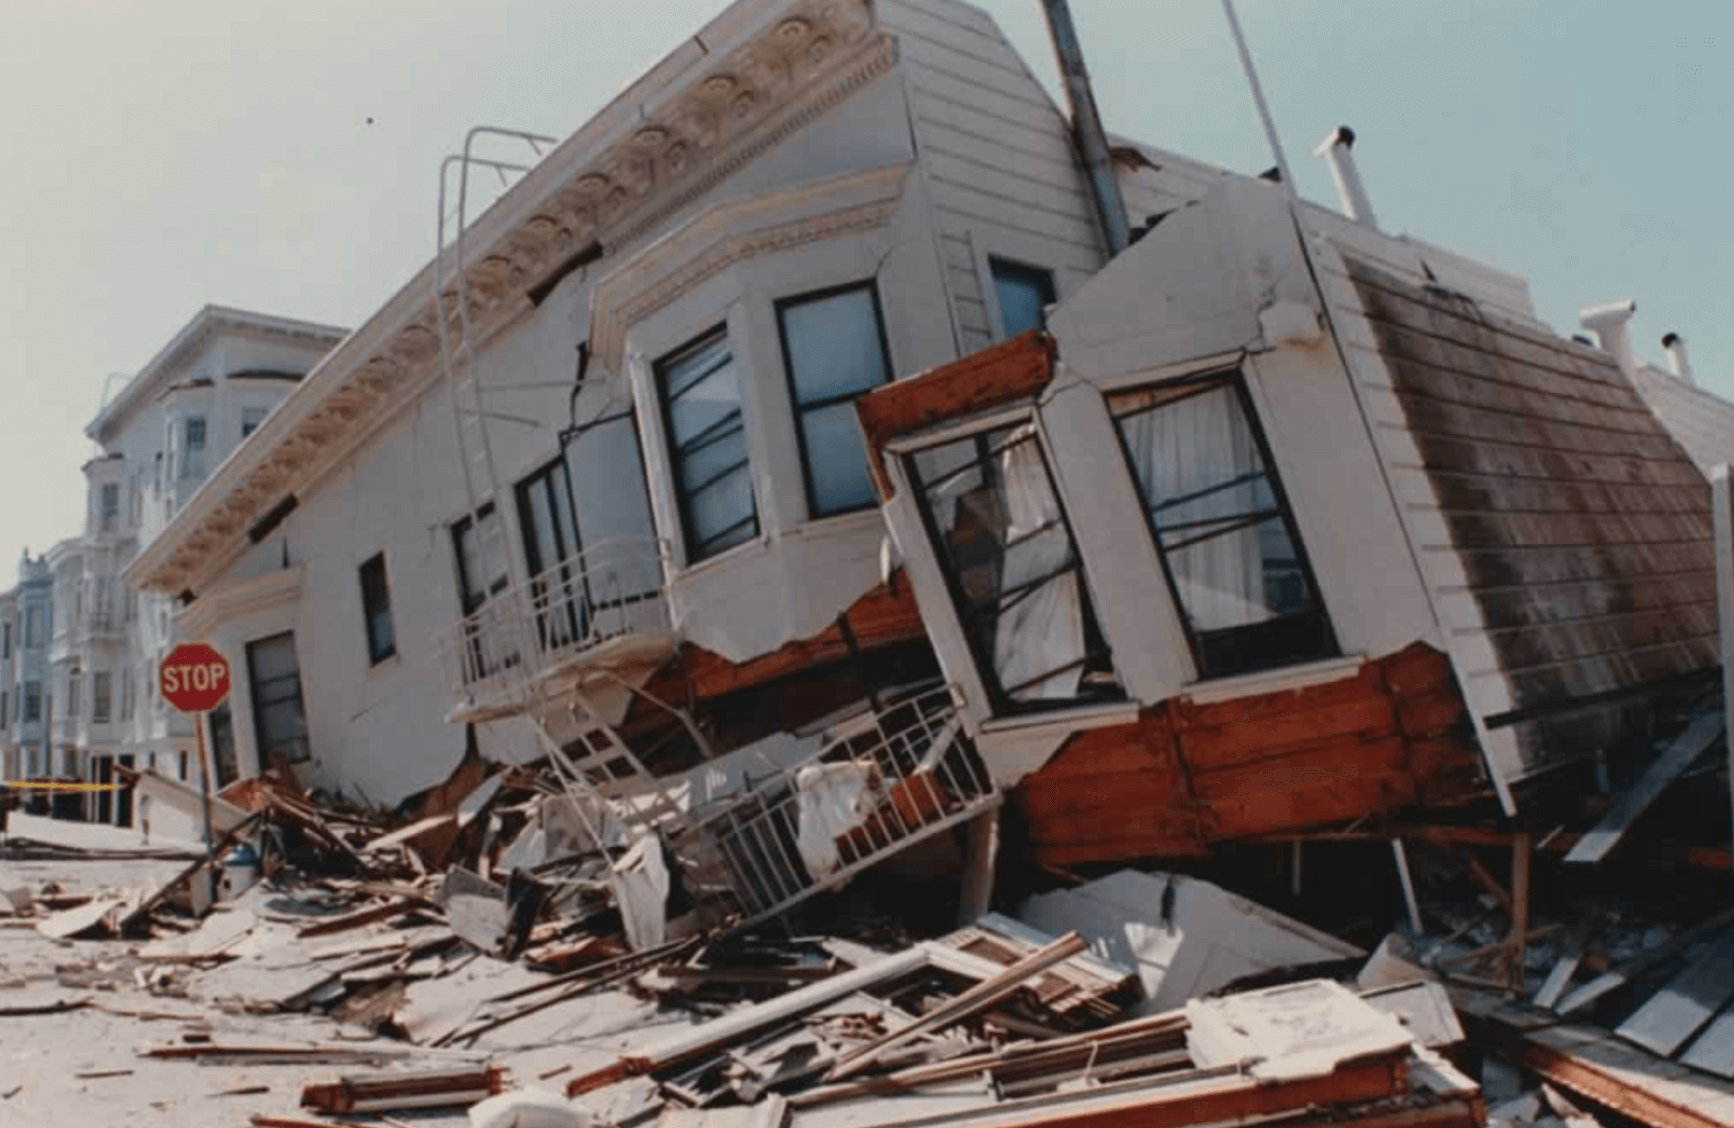 Image from the Loma Prieta earthquake in 1989 for the blog post on earthquake insurance